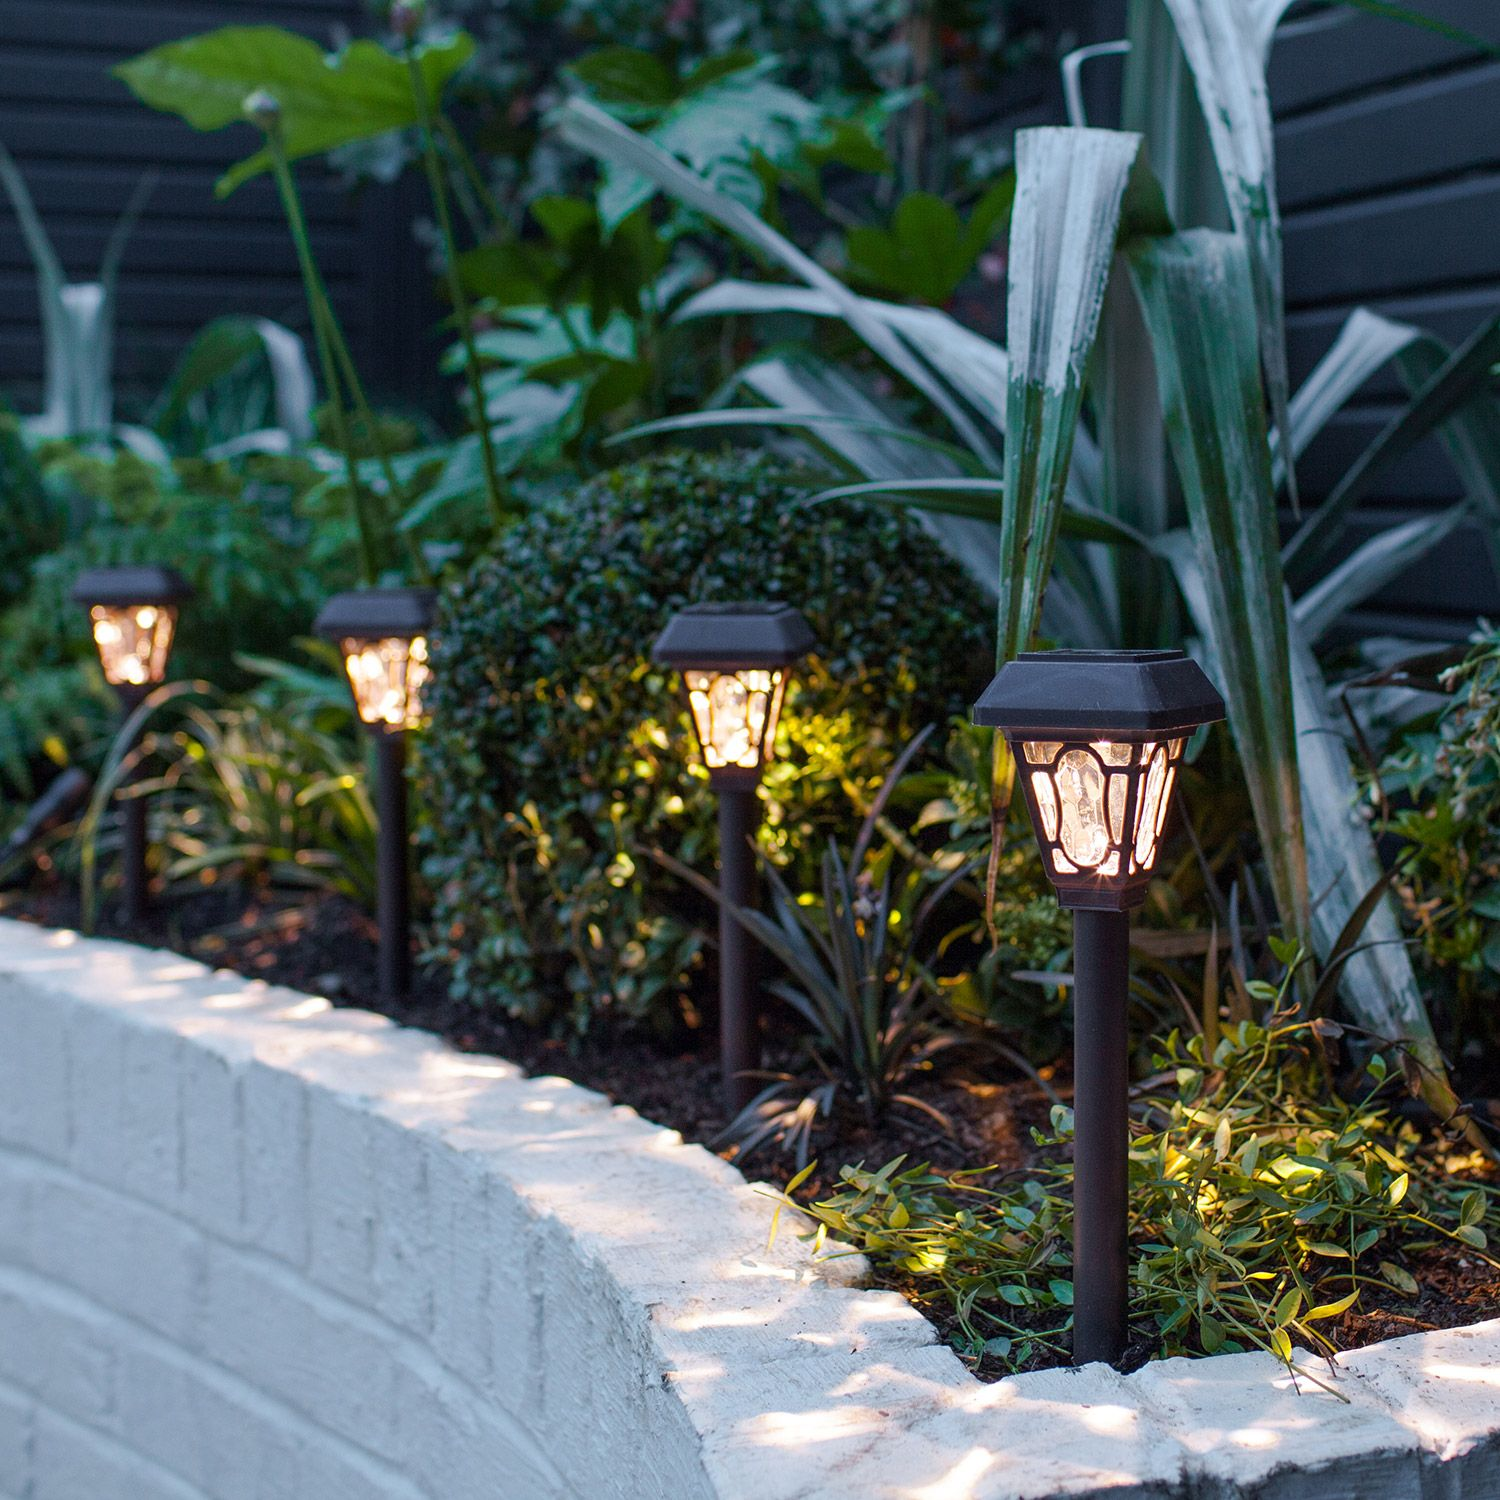 4 Edwardian Solar Stake Lights Solar Powered Garden Lights Solar Lights Garden Outdoor Solar Lights